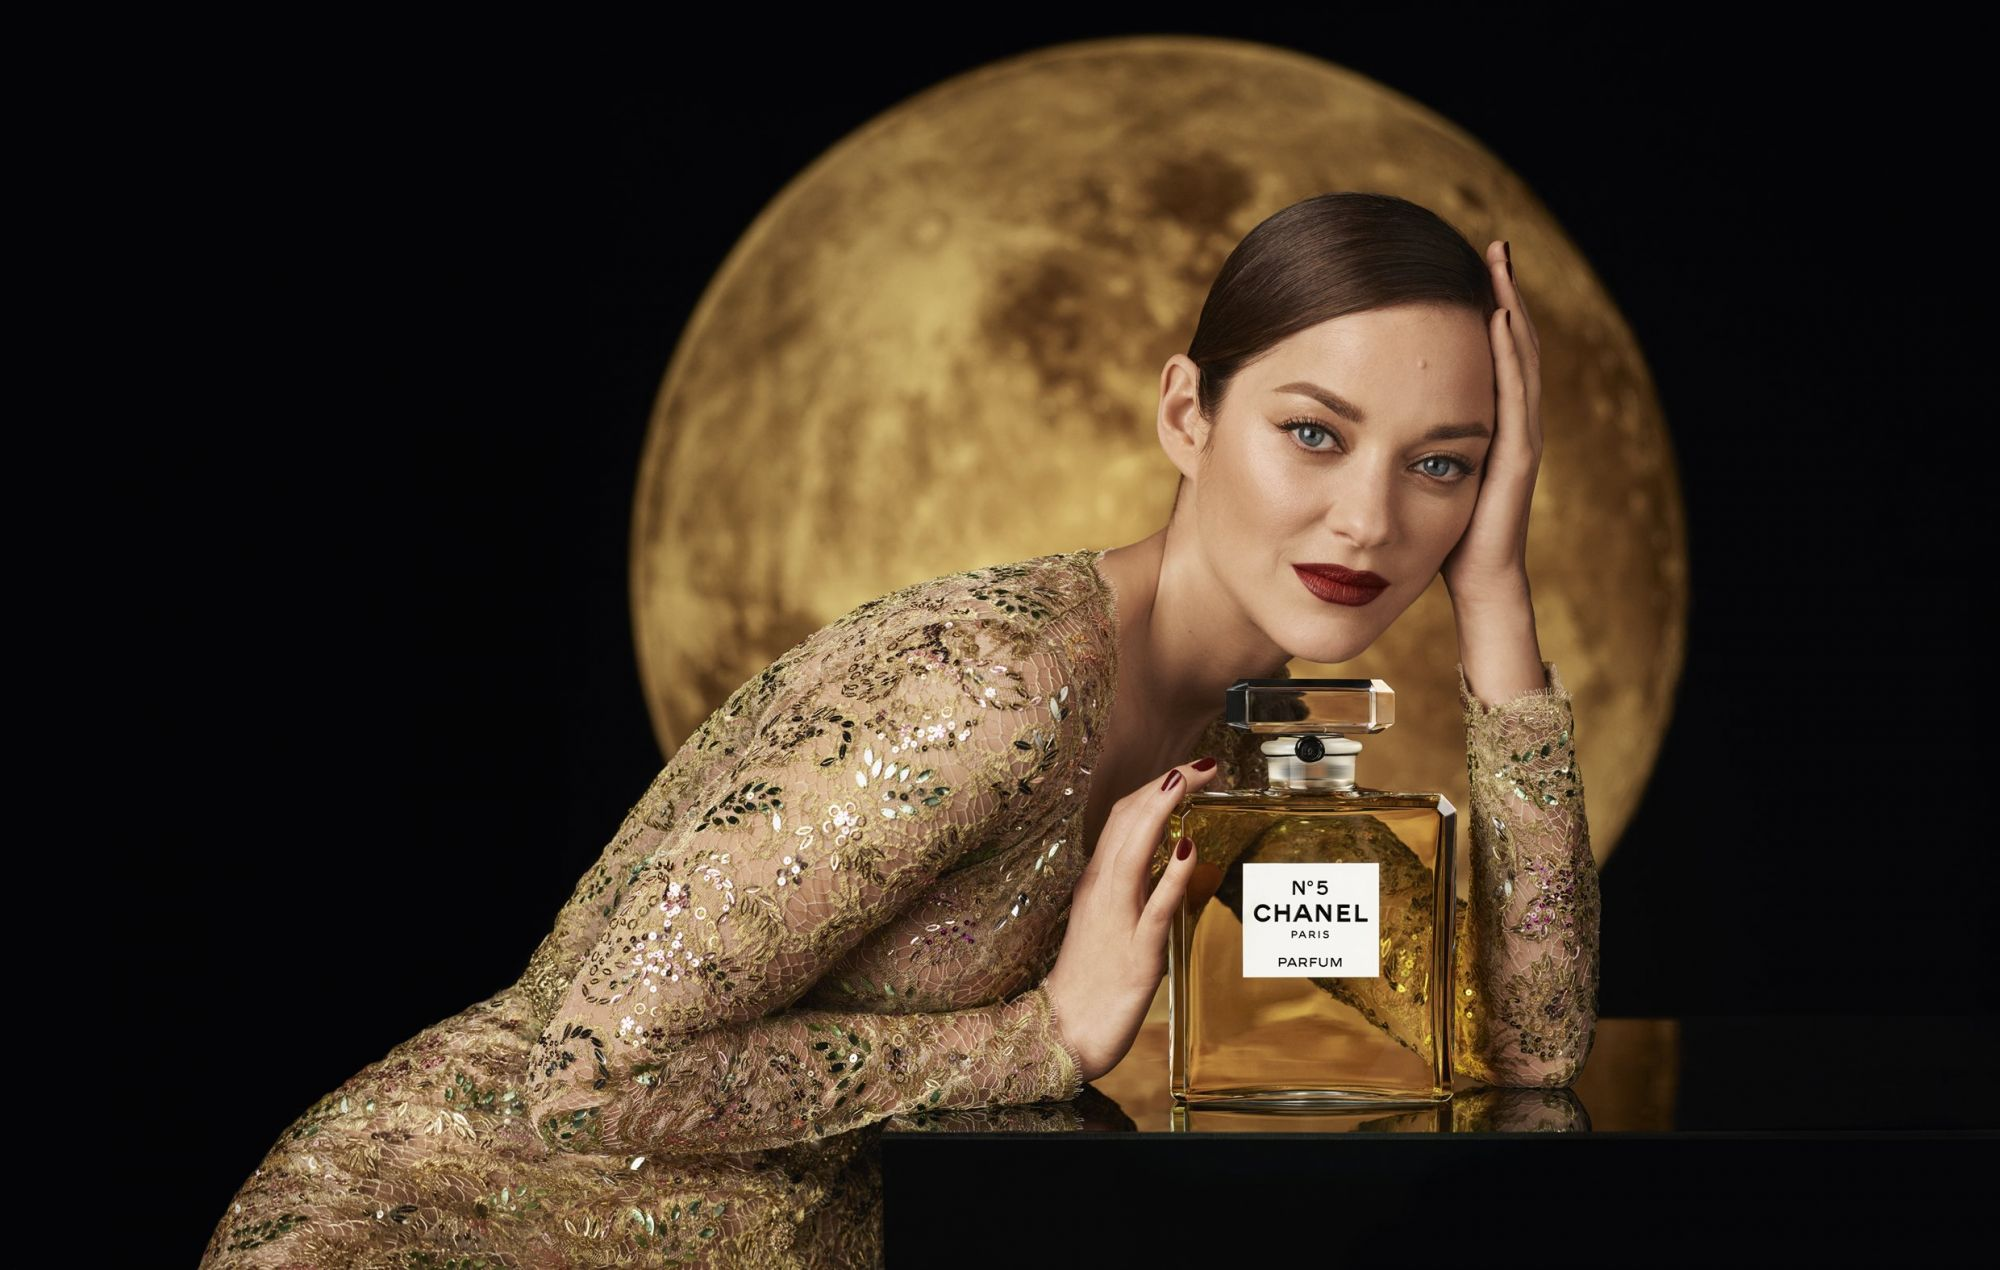 Actress Marion Cotillard Talks Chanel N°5 And The New Campaign Film